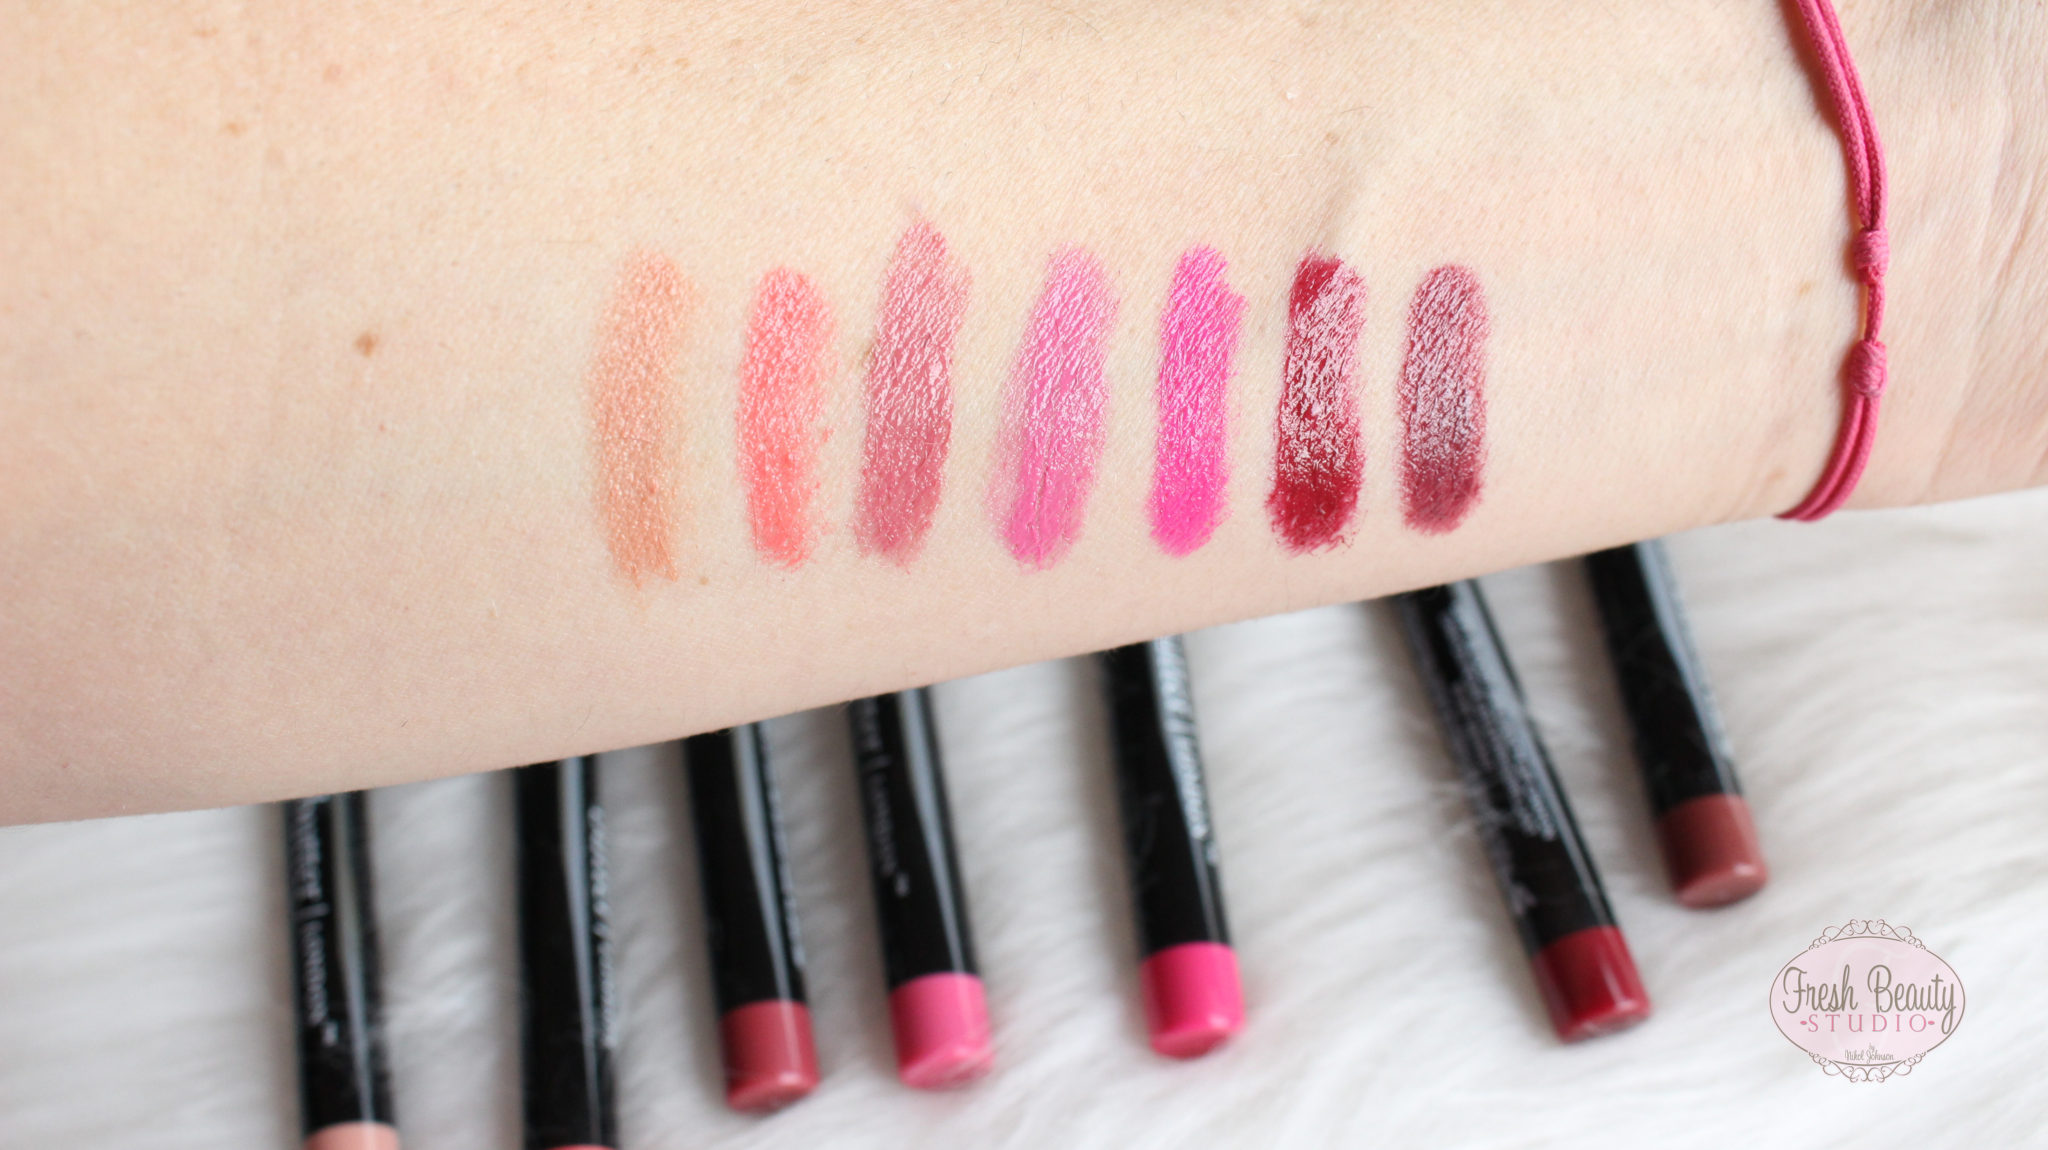 Butter London Bloody Brilliant Lip Crayon Review